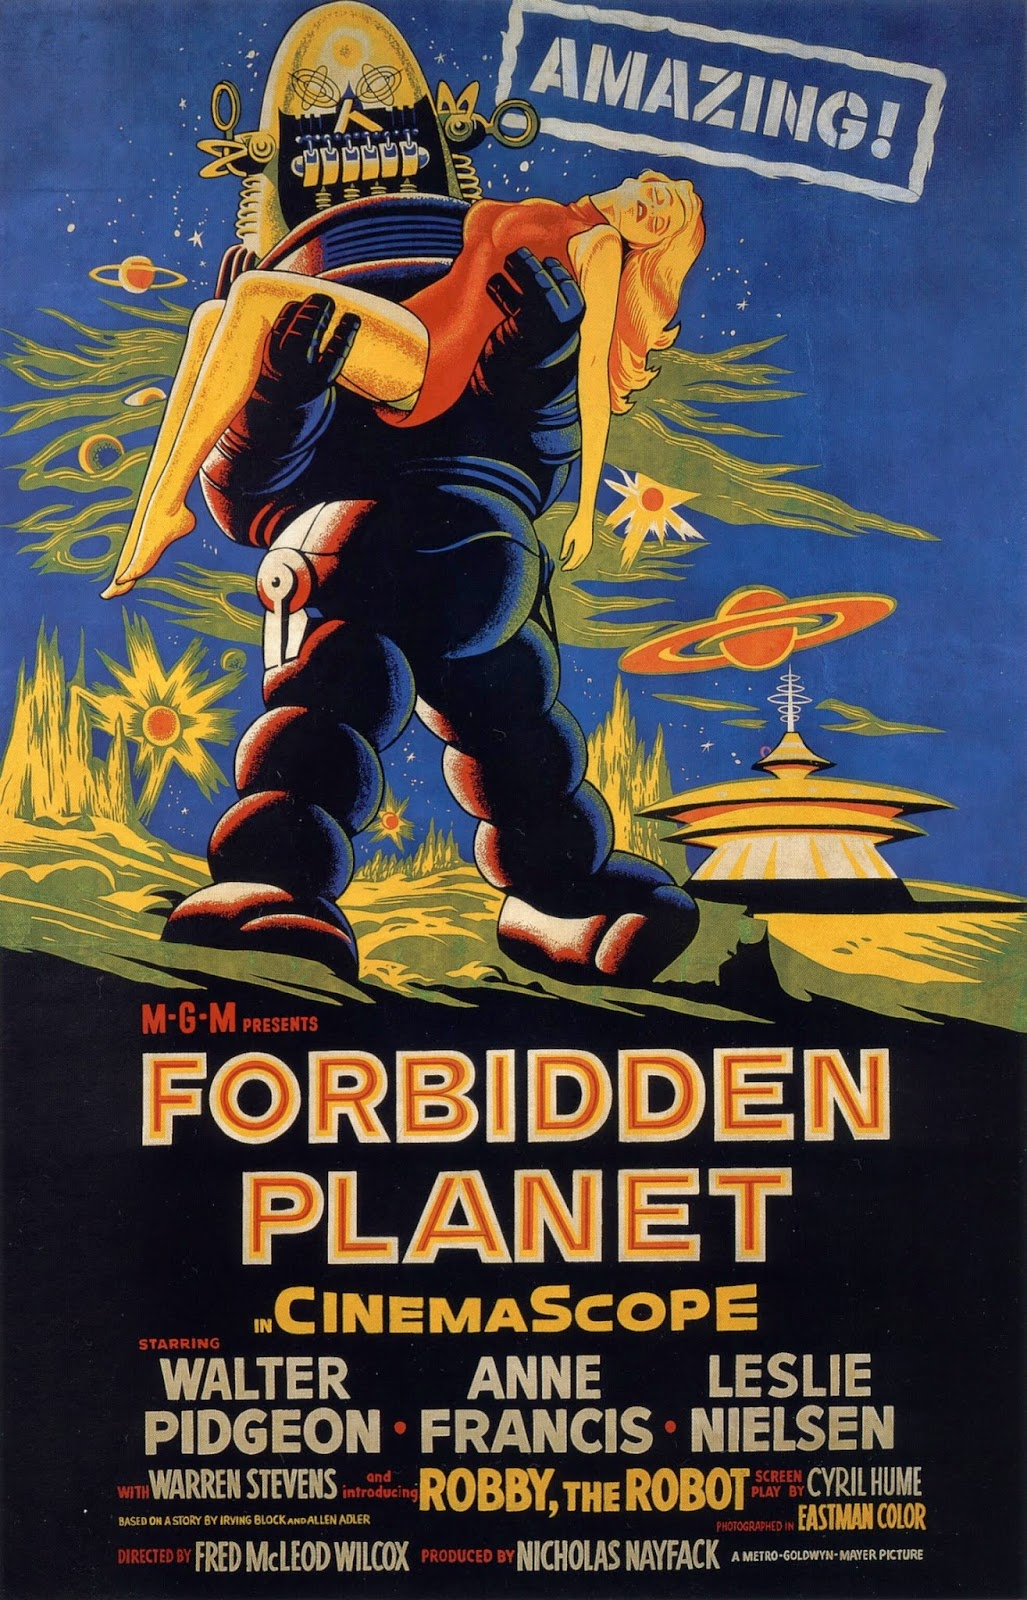 forbidden planet (1958), william malone forbidden planet robby, the robot